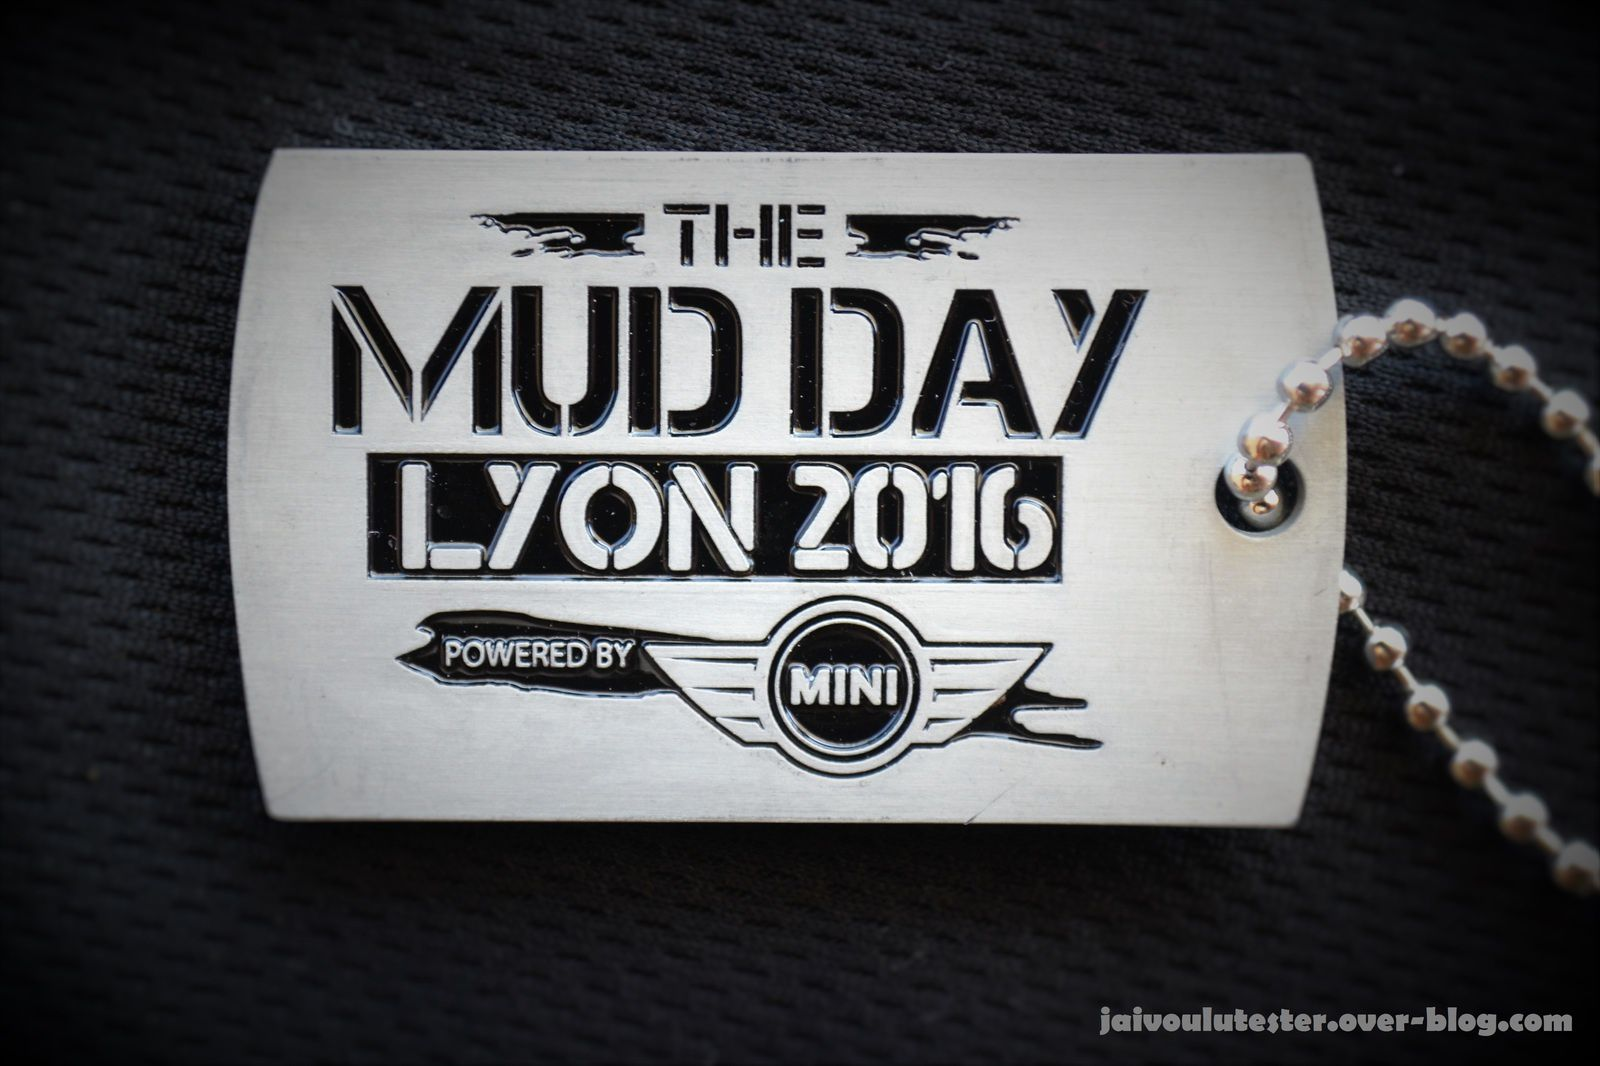 ...The Mud Day: la boue, la boue, la boue!